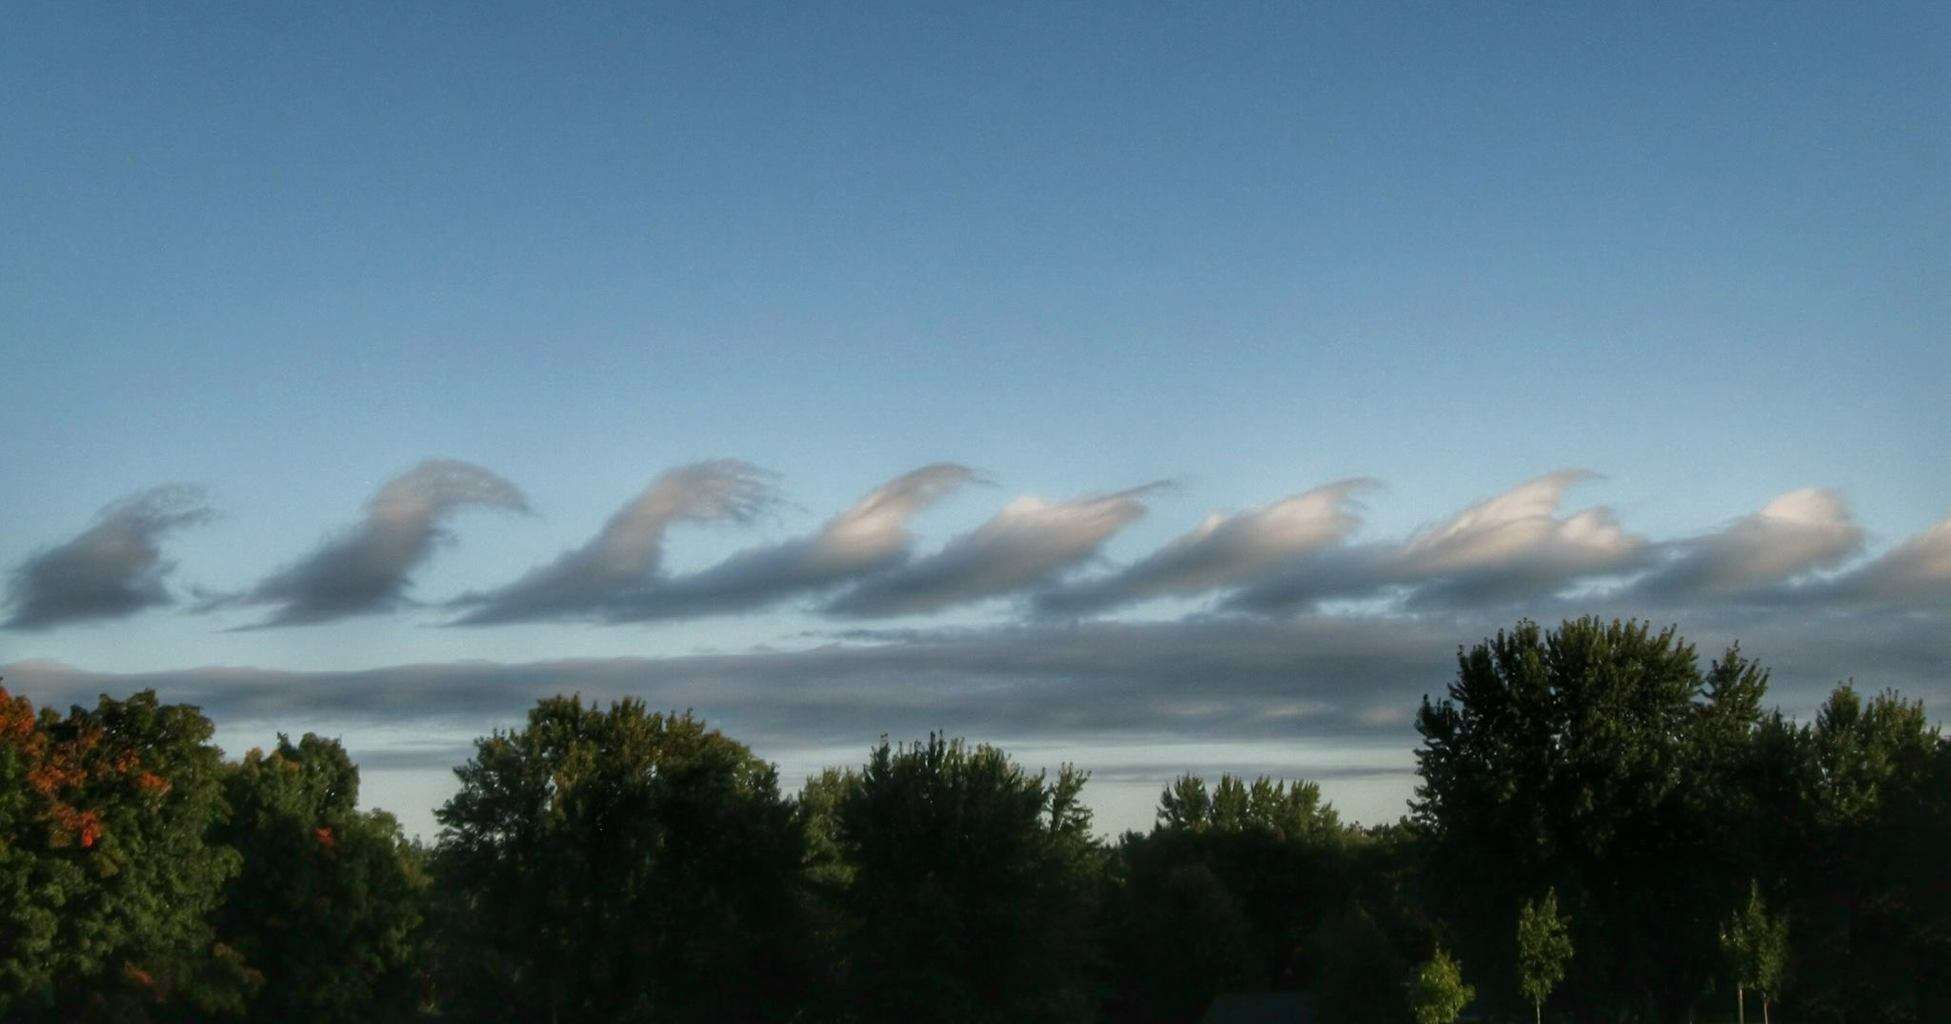 Wave clouds over Eau Claire, WI yesterday morning